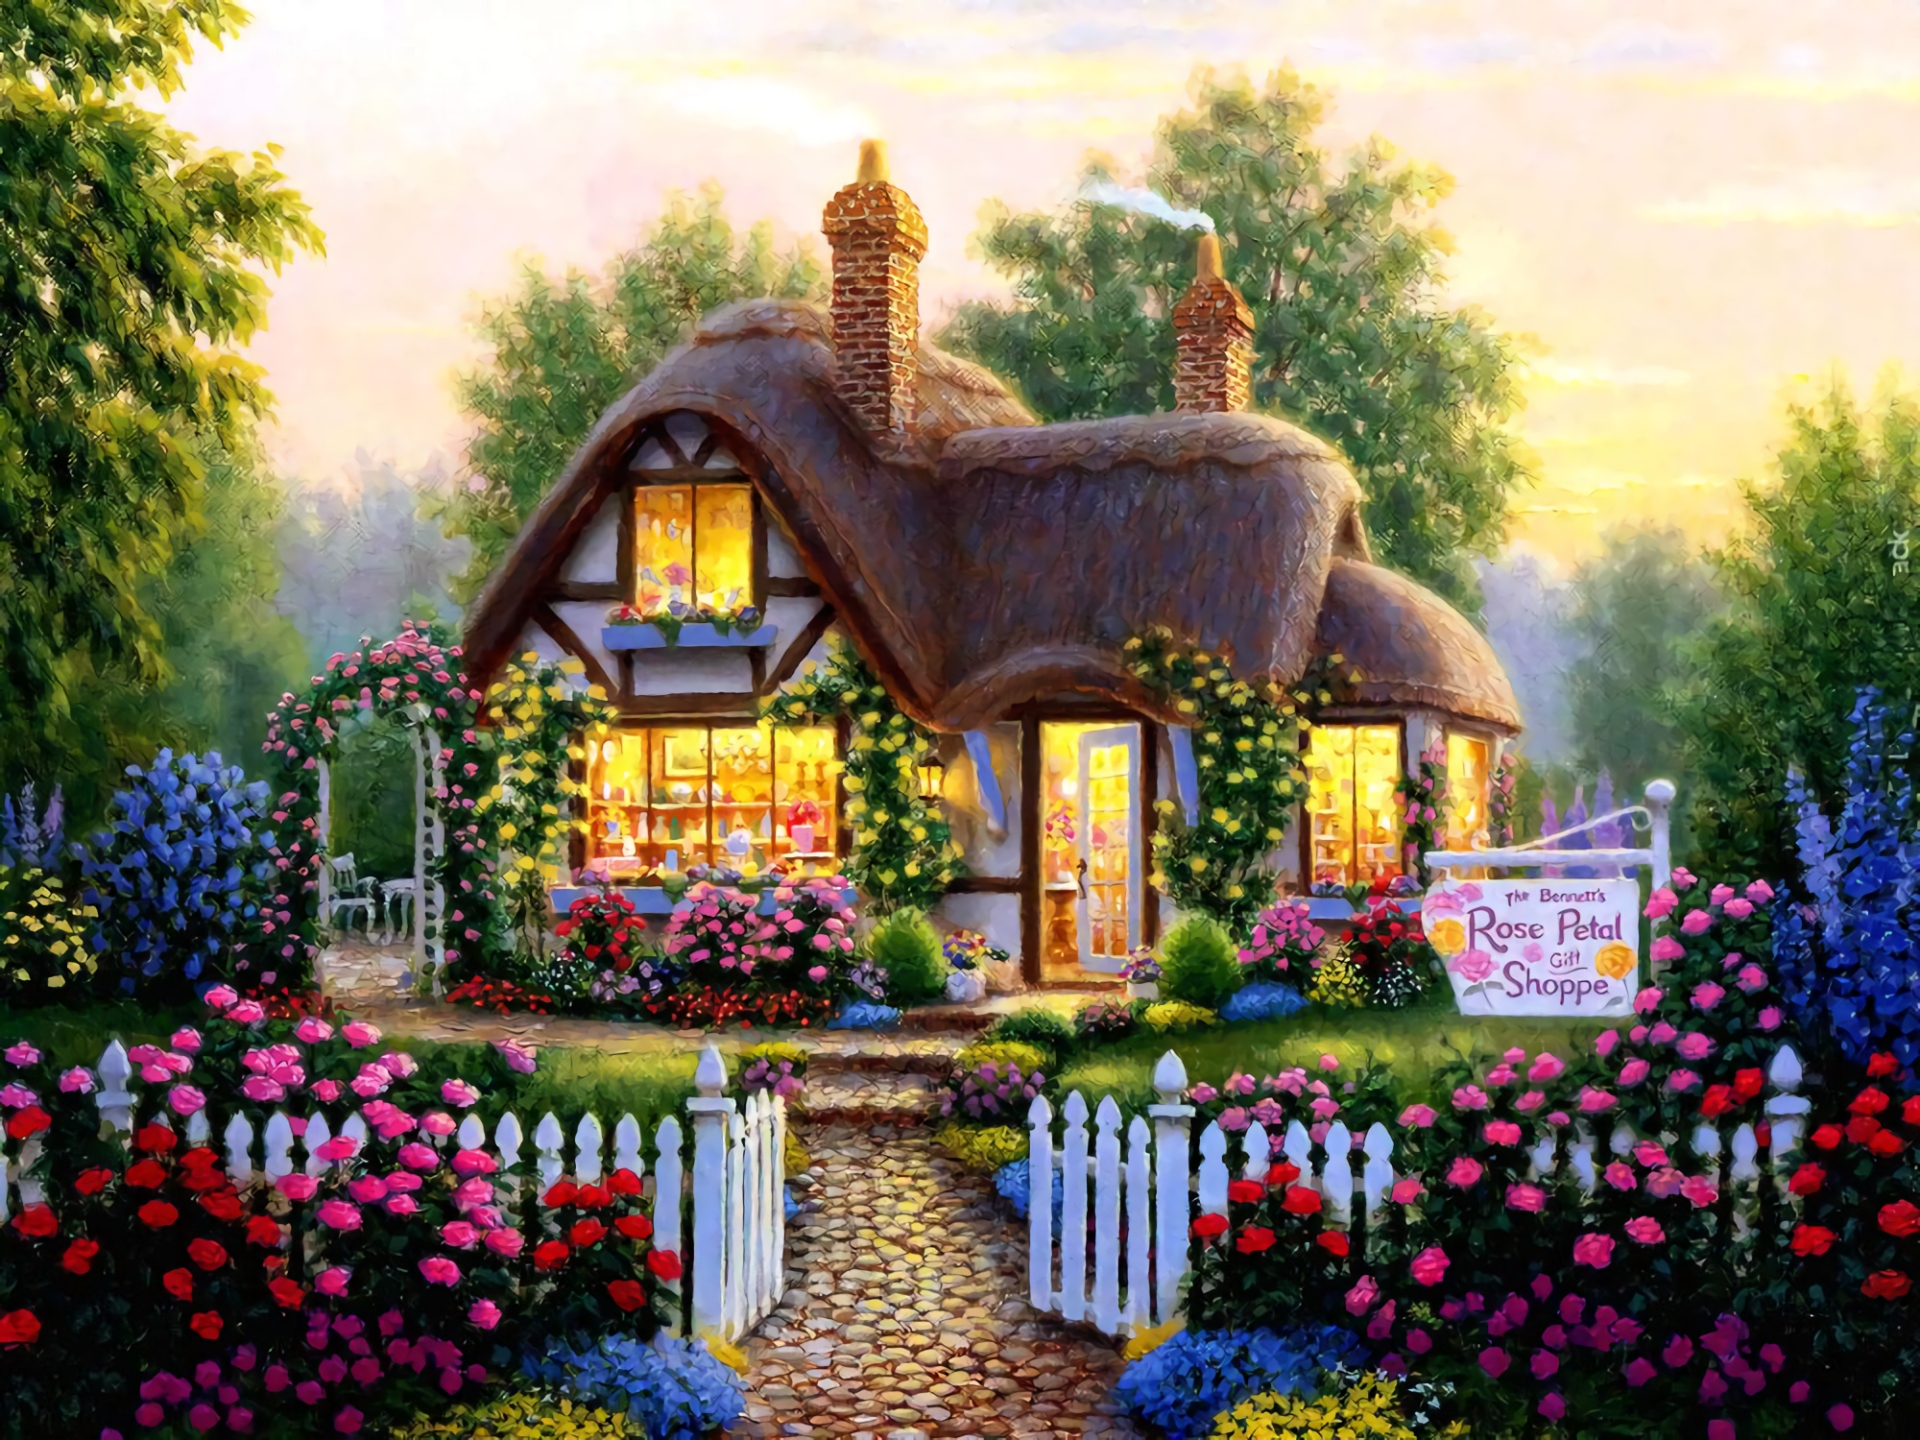 Artistic - House  Artistic Painting Cottage Flower Wallpaper